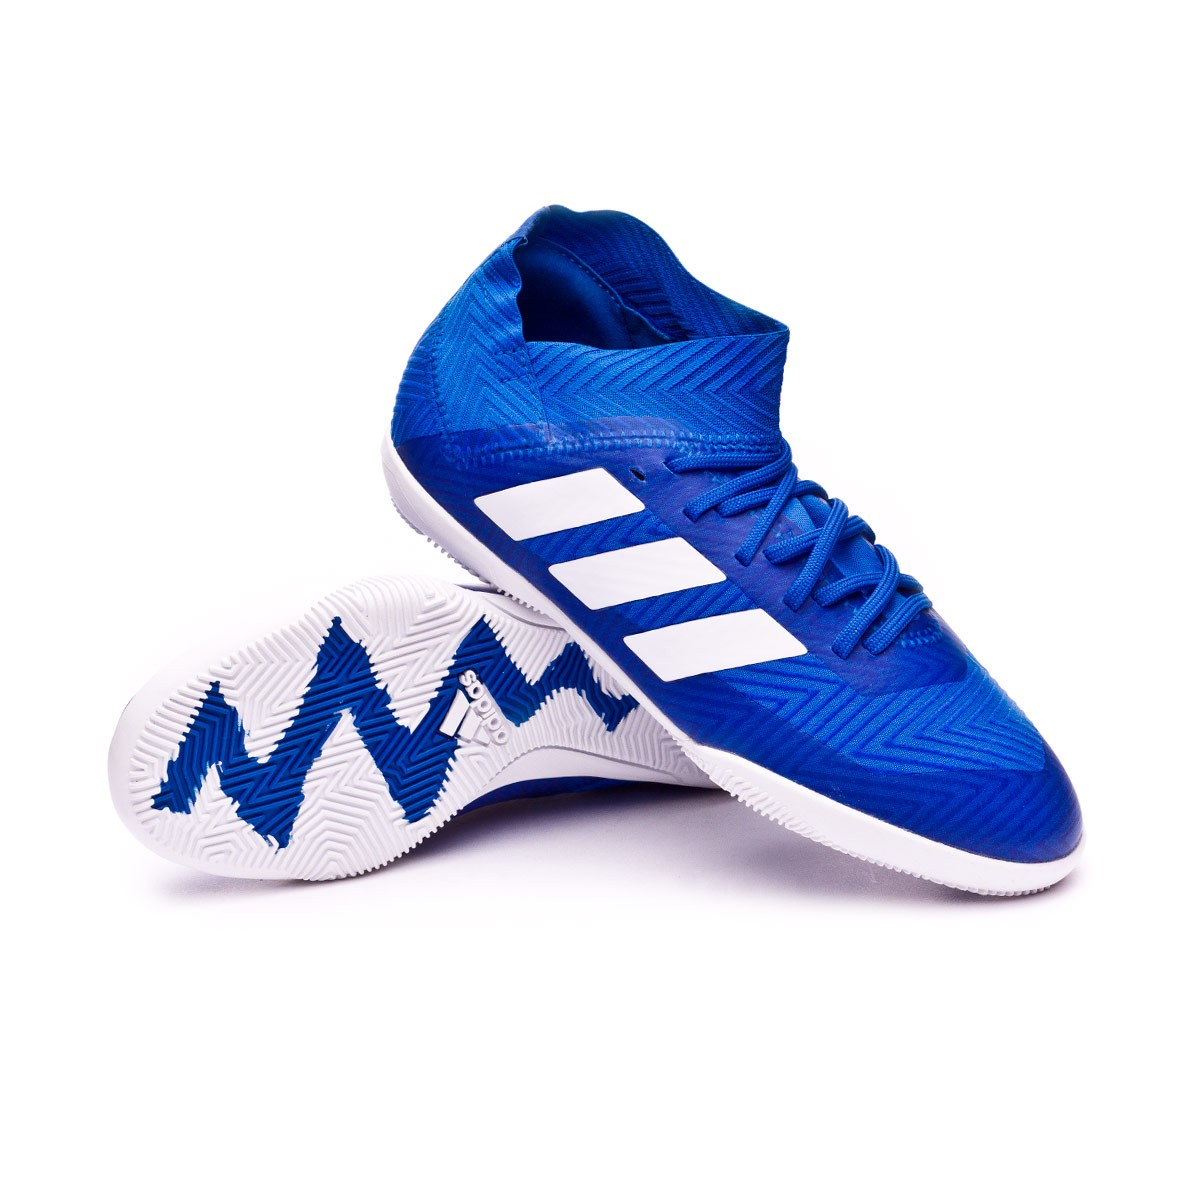 636dfe73a21 Futsal Boot adidas Kids Nemeziz Tango 18.3 IN Football blue-White-Football  blue - Football store Fútbol Emotion